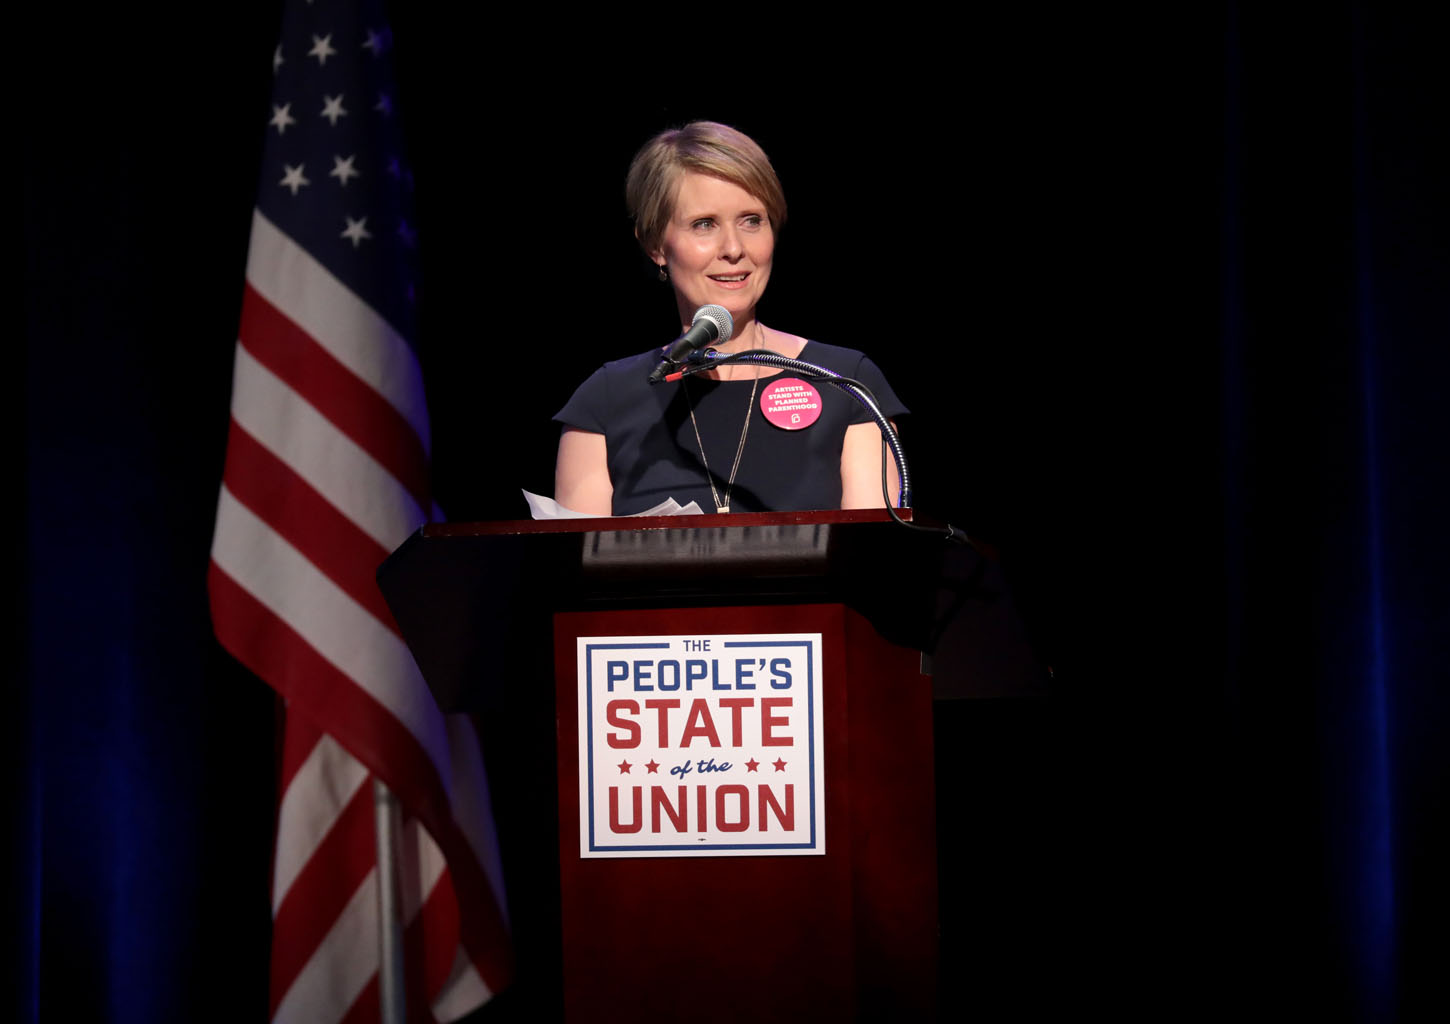 NEW YORK, NY - JANUARY 29:  Actress Cynthia Nixon speaks onstage at The People's State Of The Union at Townhall on January 29, 2018 in New York City.  (Photo by Cindy Ord/Getty Images for We Stand United)